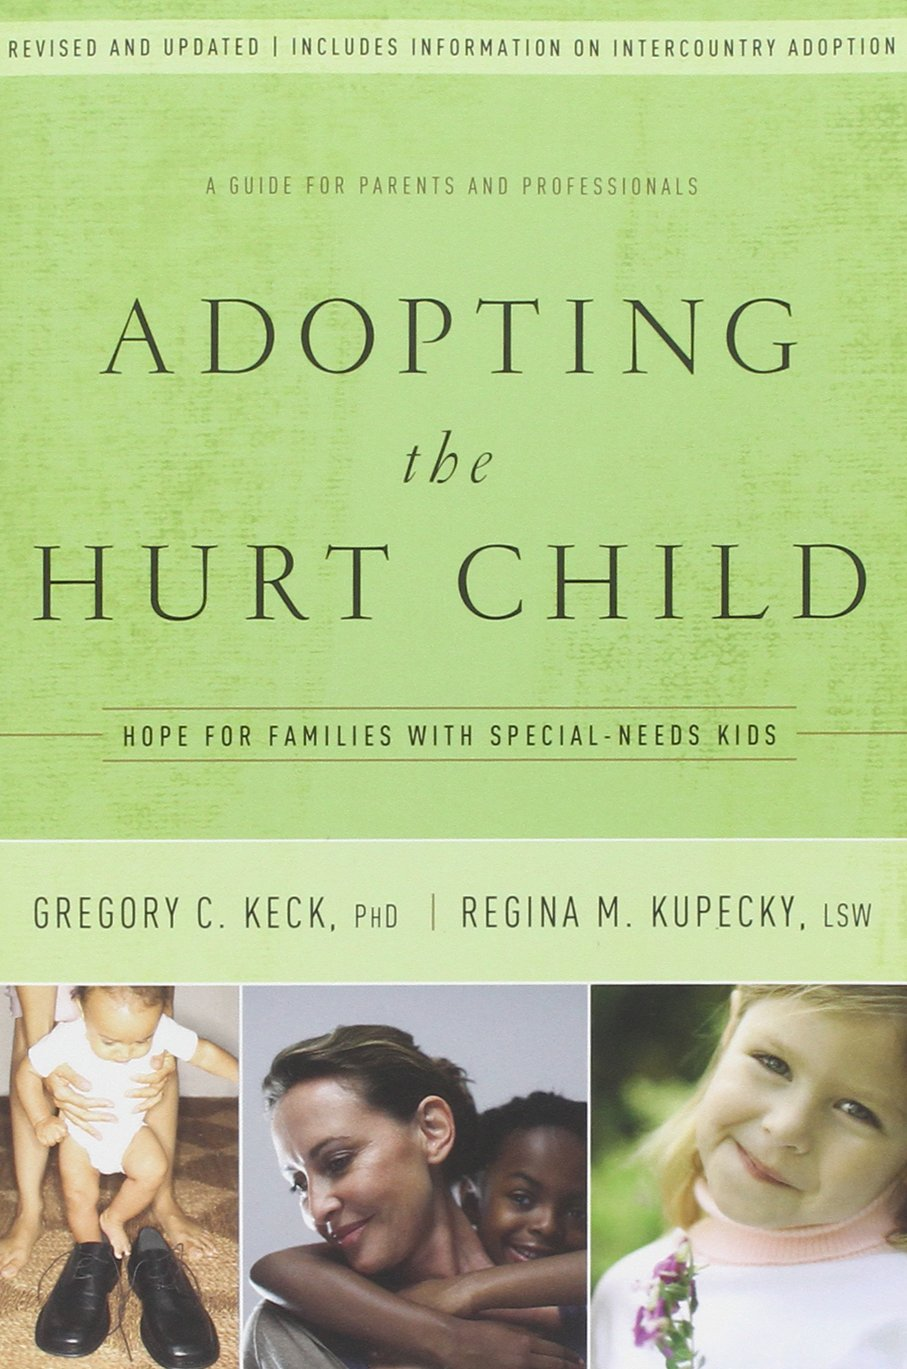 Adopting The Hurt Child: Hope For Families With Specialneeds Kids  A  Guide For Parents And Professionals: Gregory Keck, Regina Kupecky:  9781600062896: